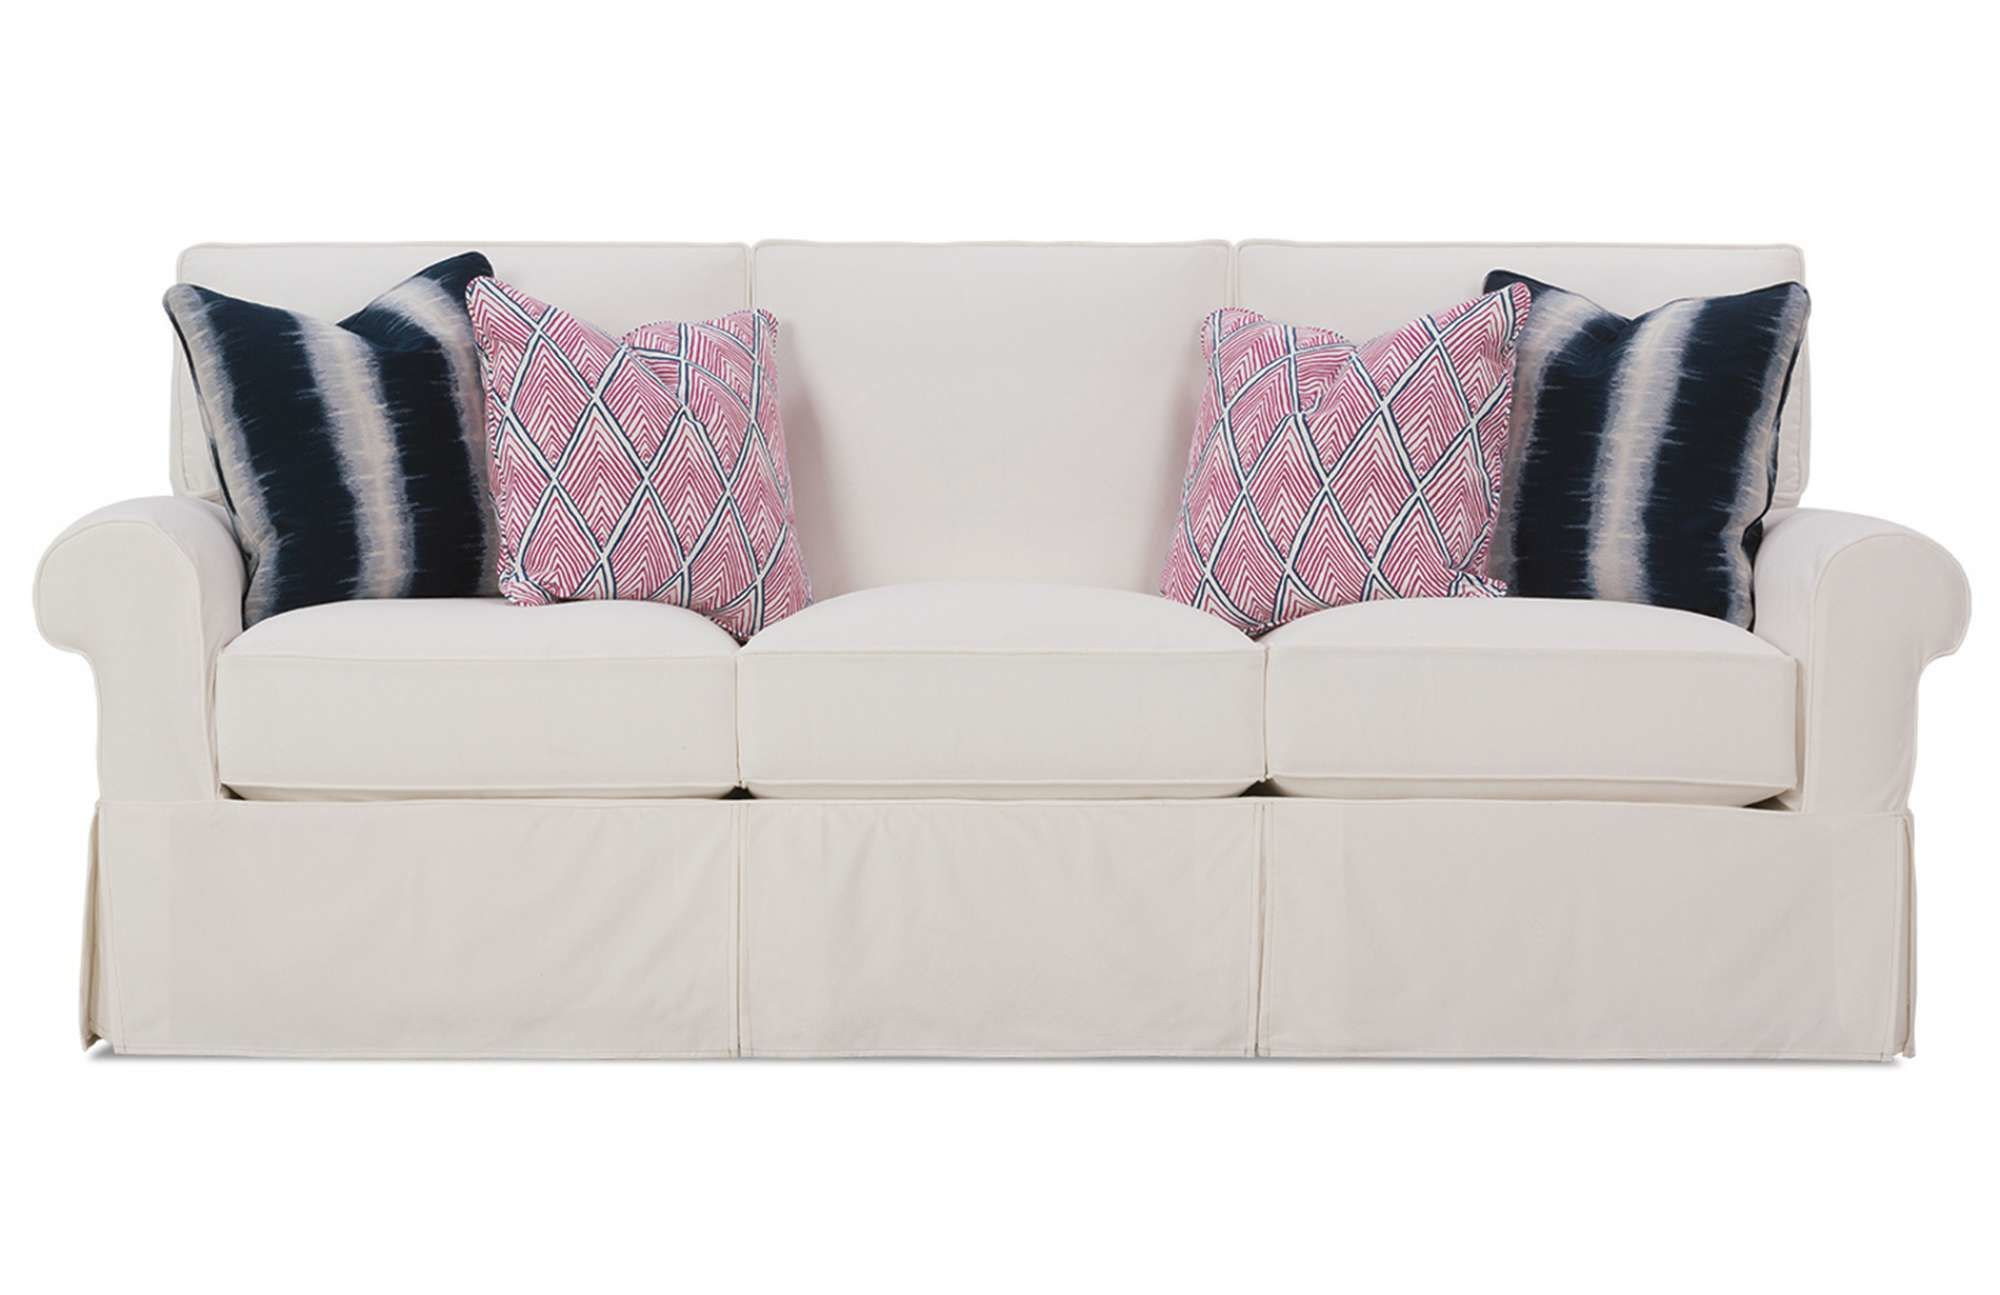 fantastic 3 cushion sofa slipcover photo-Top 3 Cushion sofa Slipcover Layout